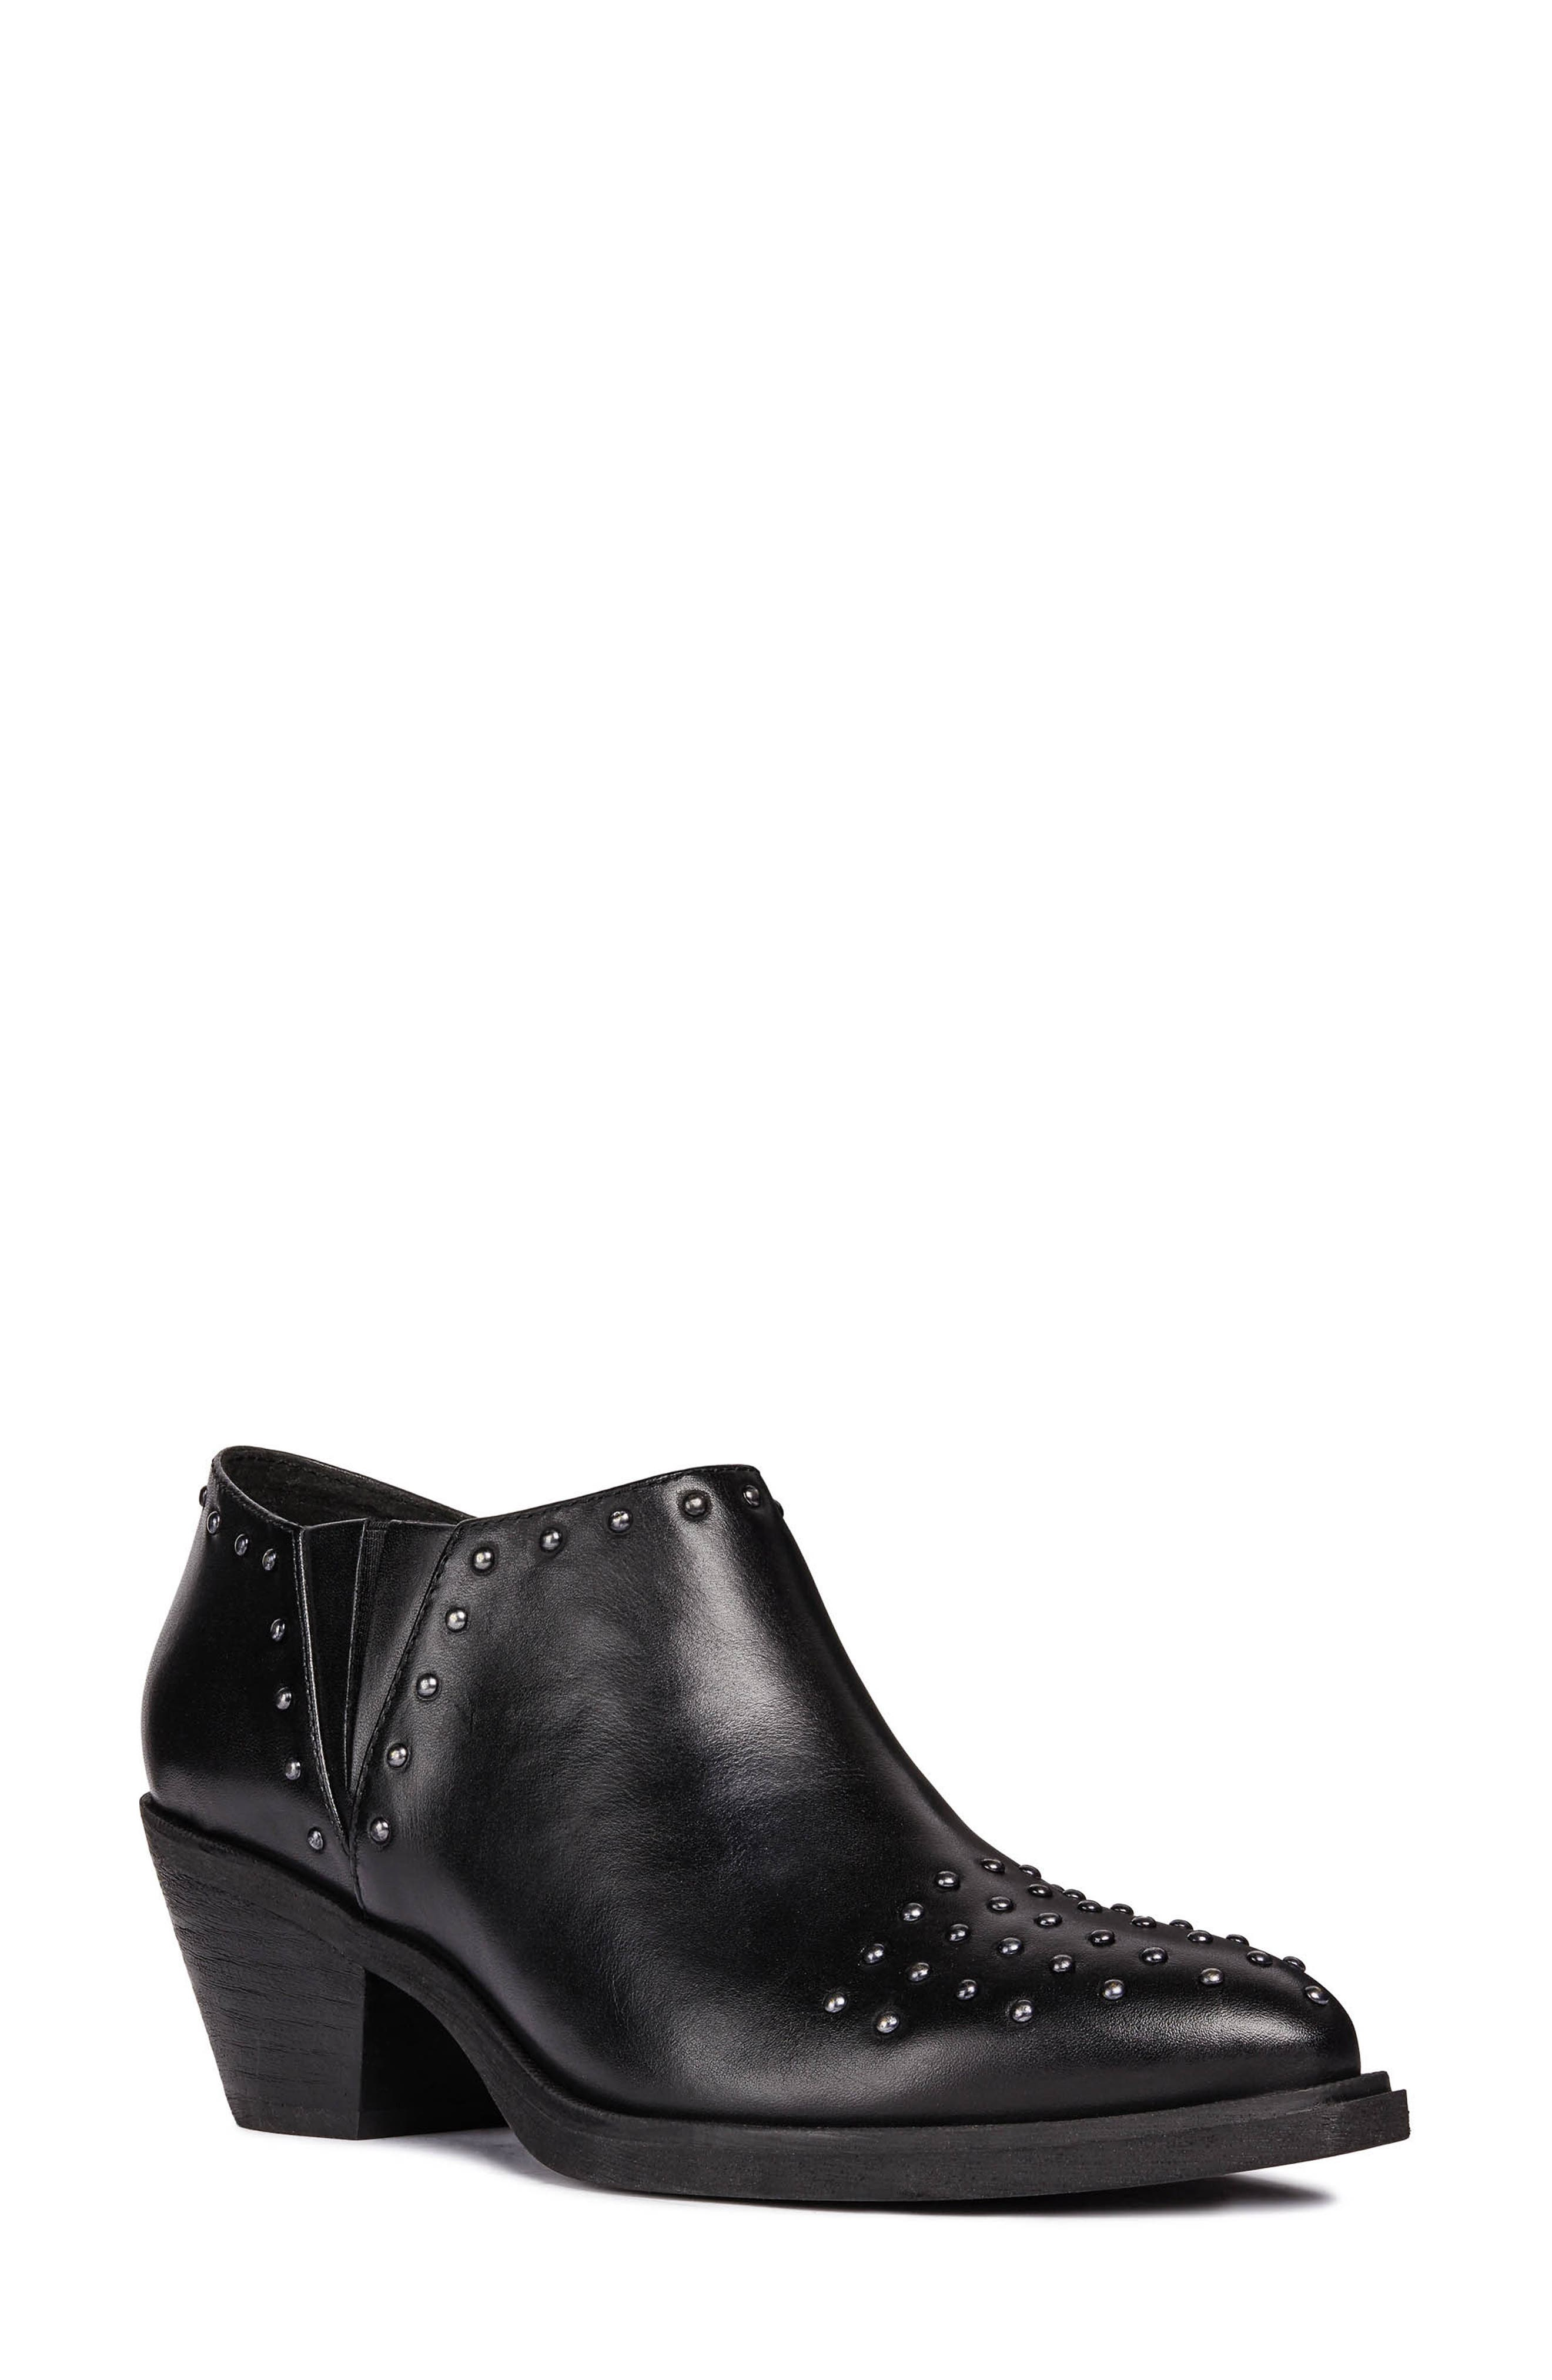 Booties Nordstrom Boots Ankle Geox Women's amp; OaH8Zwqq